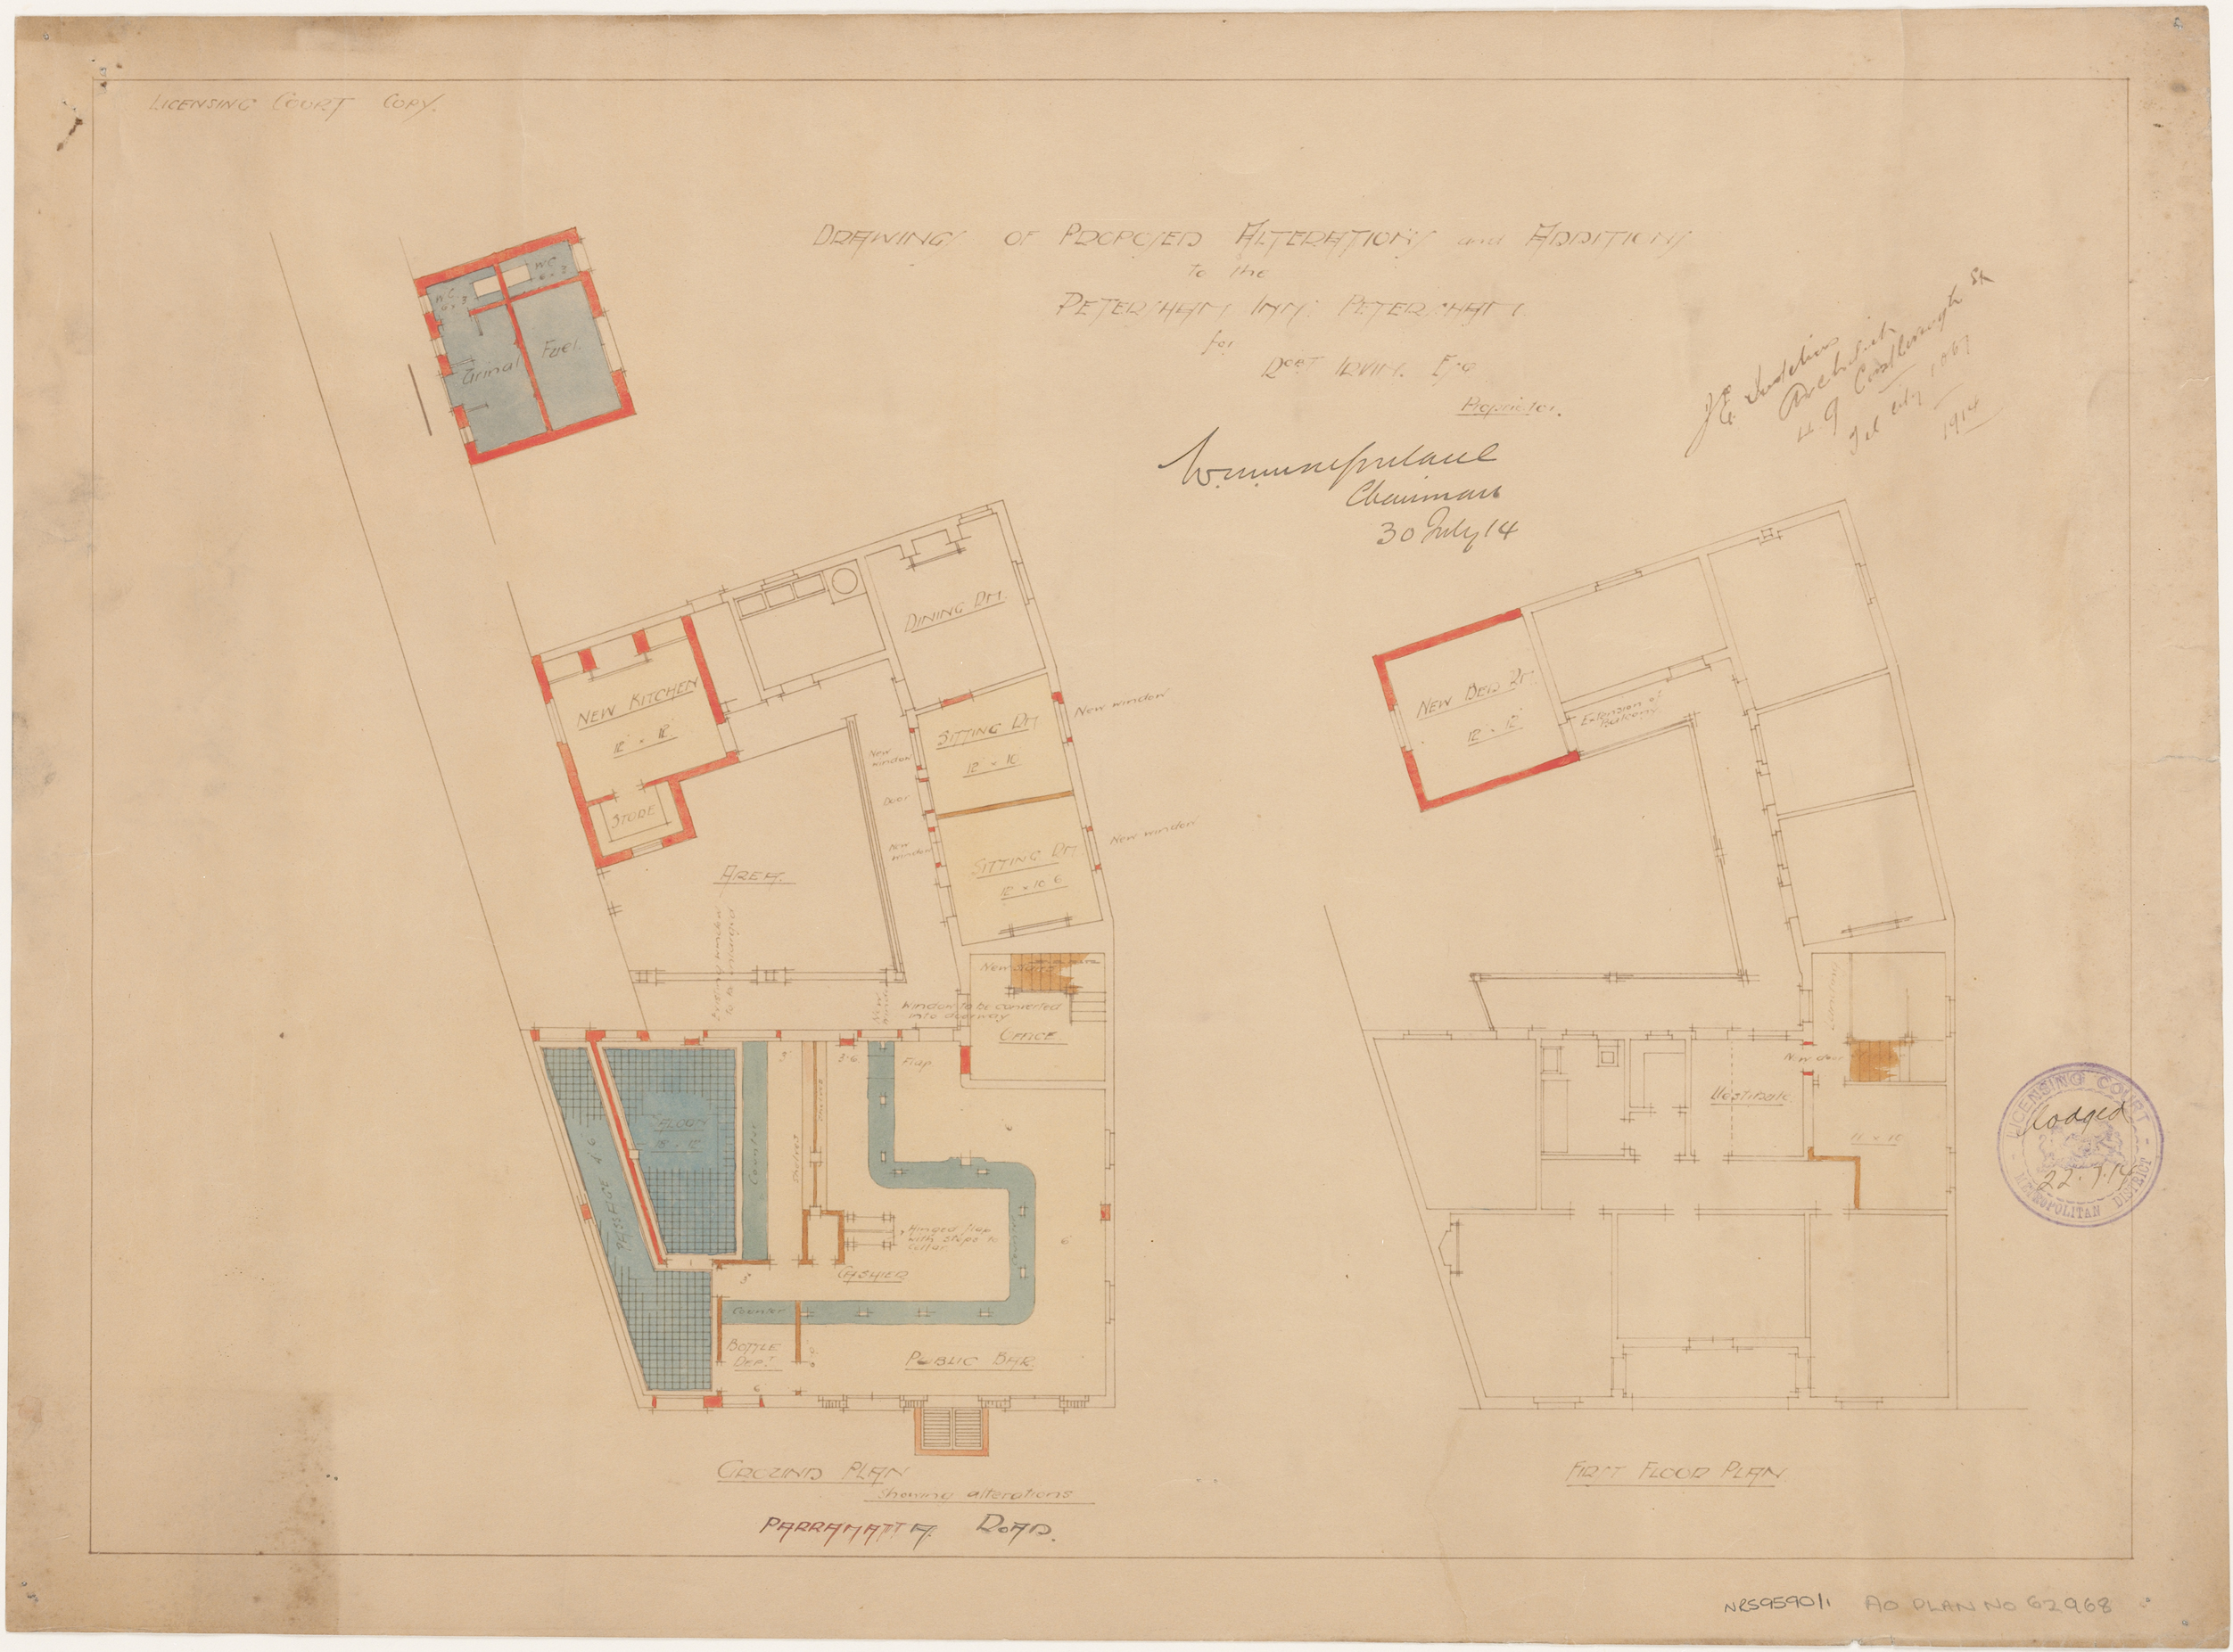 Plans of licensed premises hotel plans metropolitan licensing httpss3 ap southeast 2azonaws malvernweather Image collections